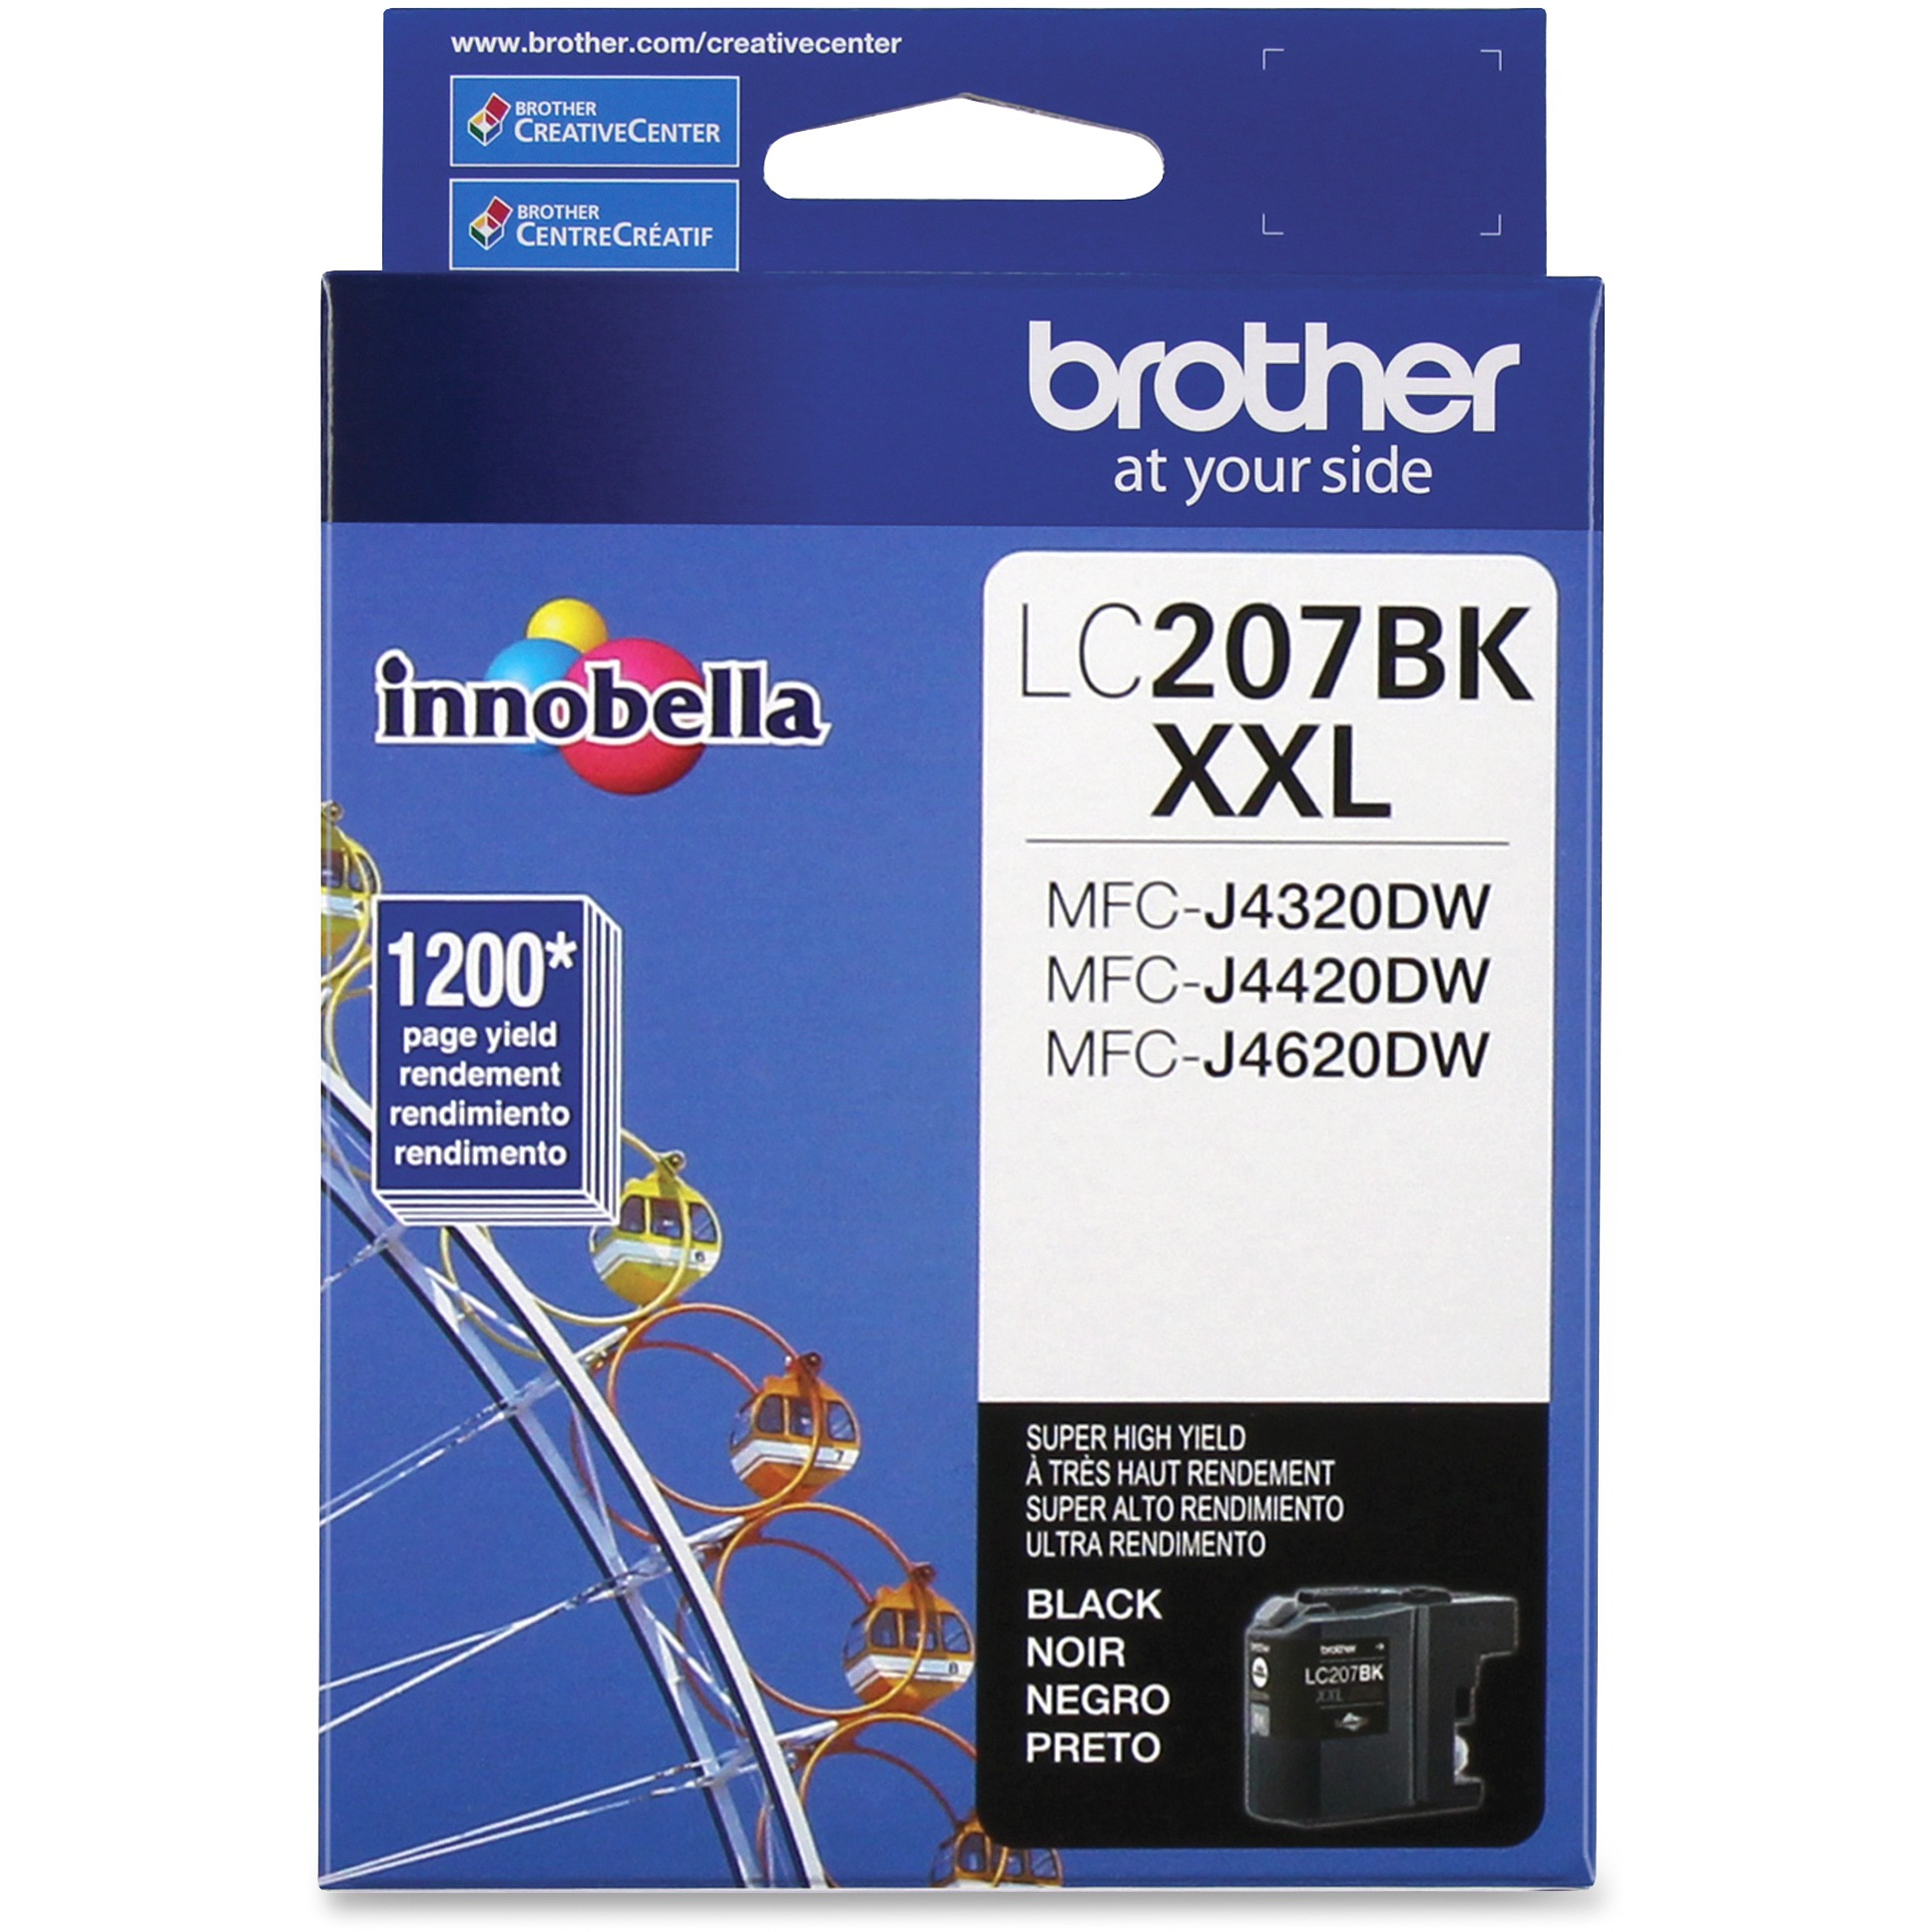 Brother LC207BK Innobella Super High-Yield Ink, Black